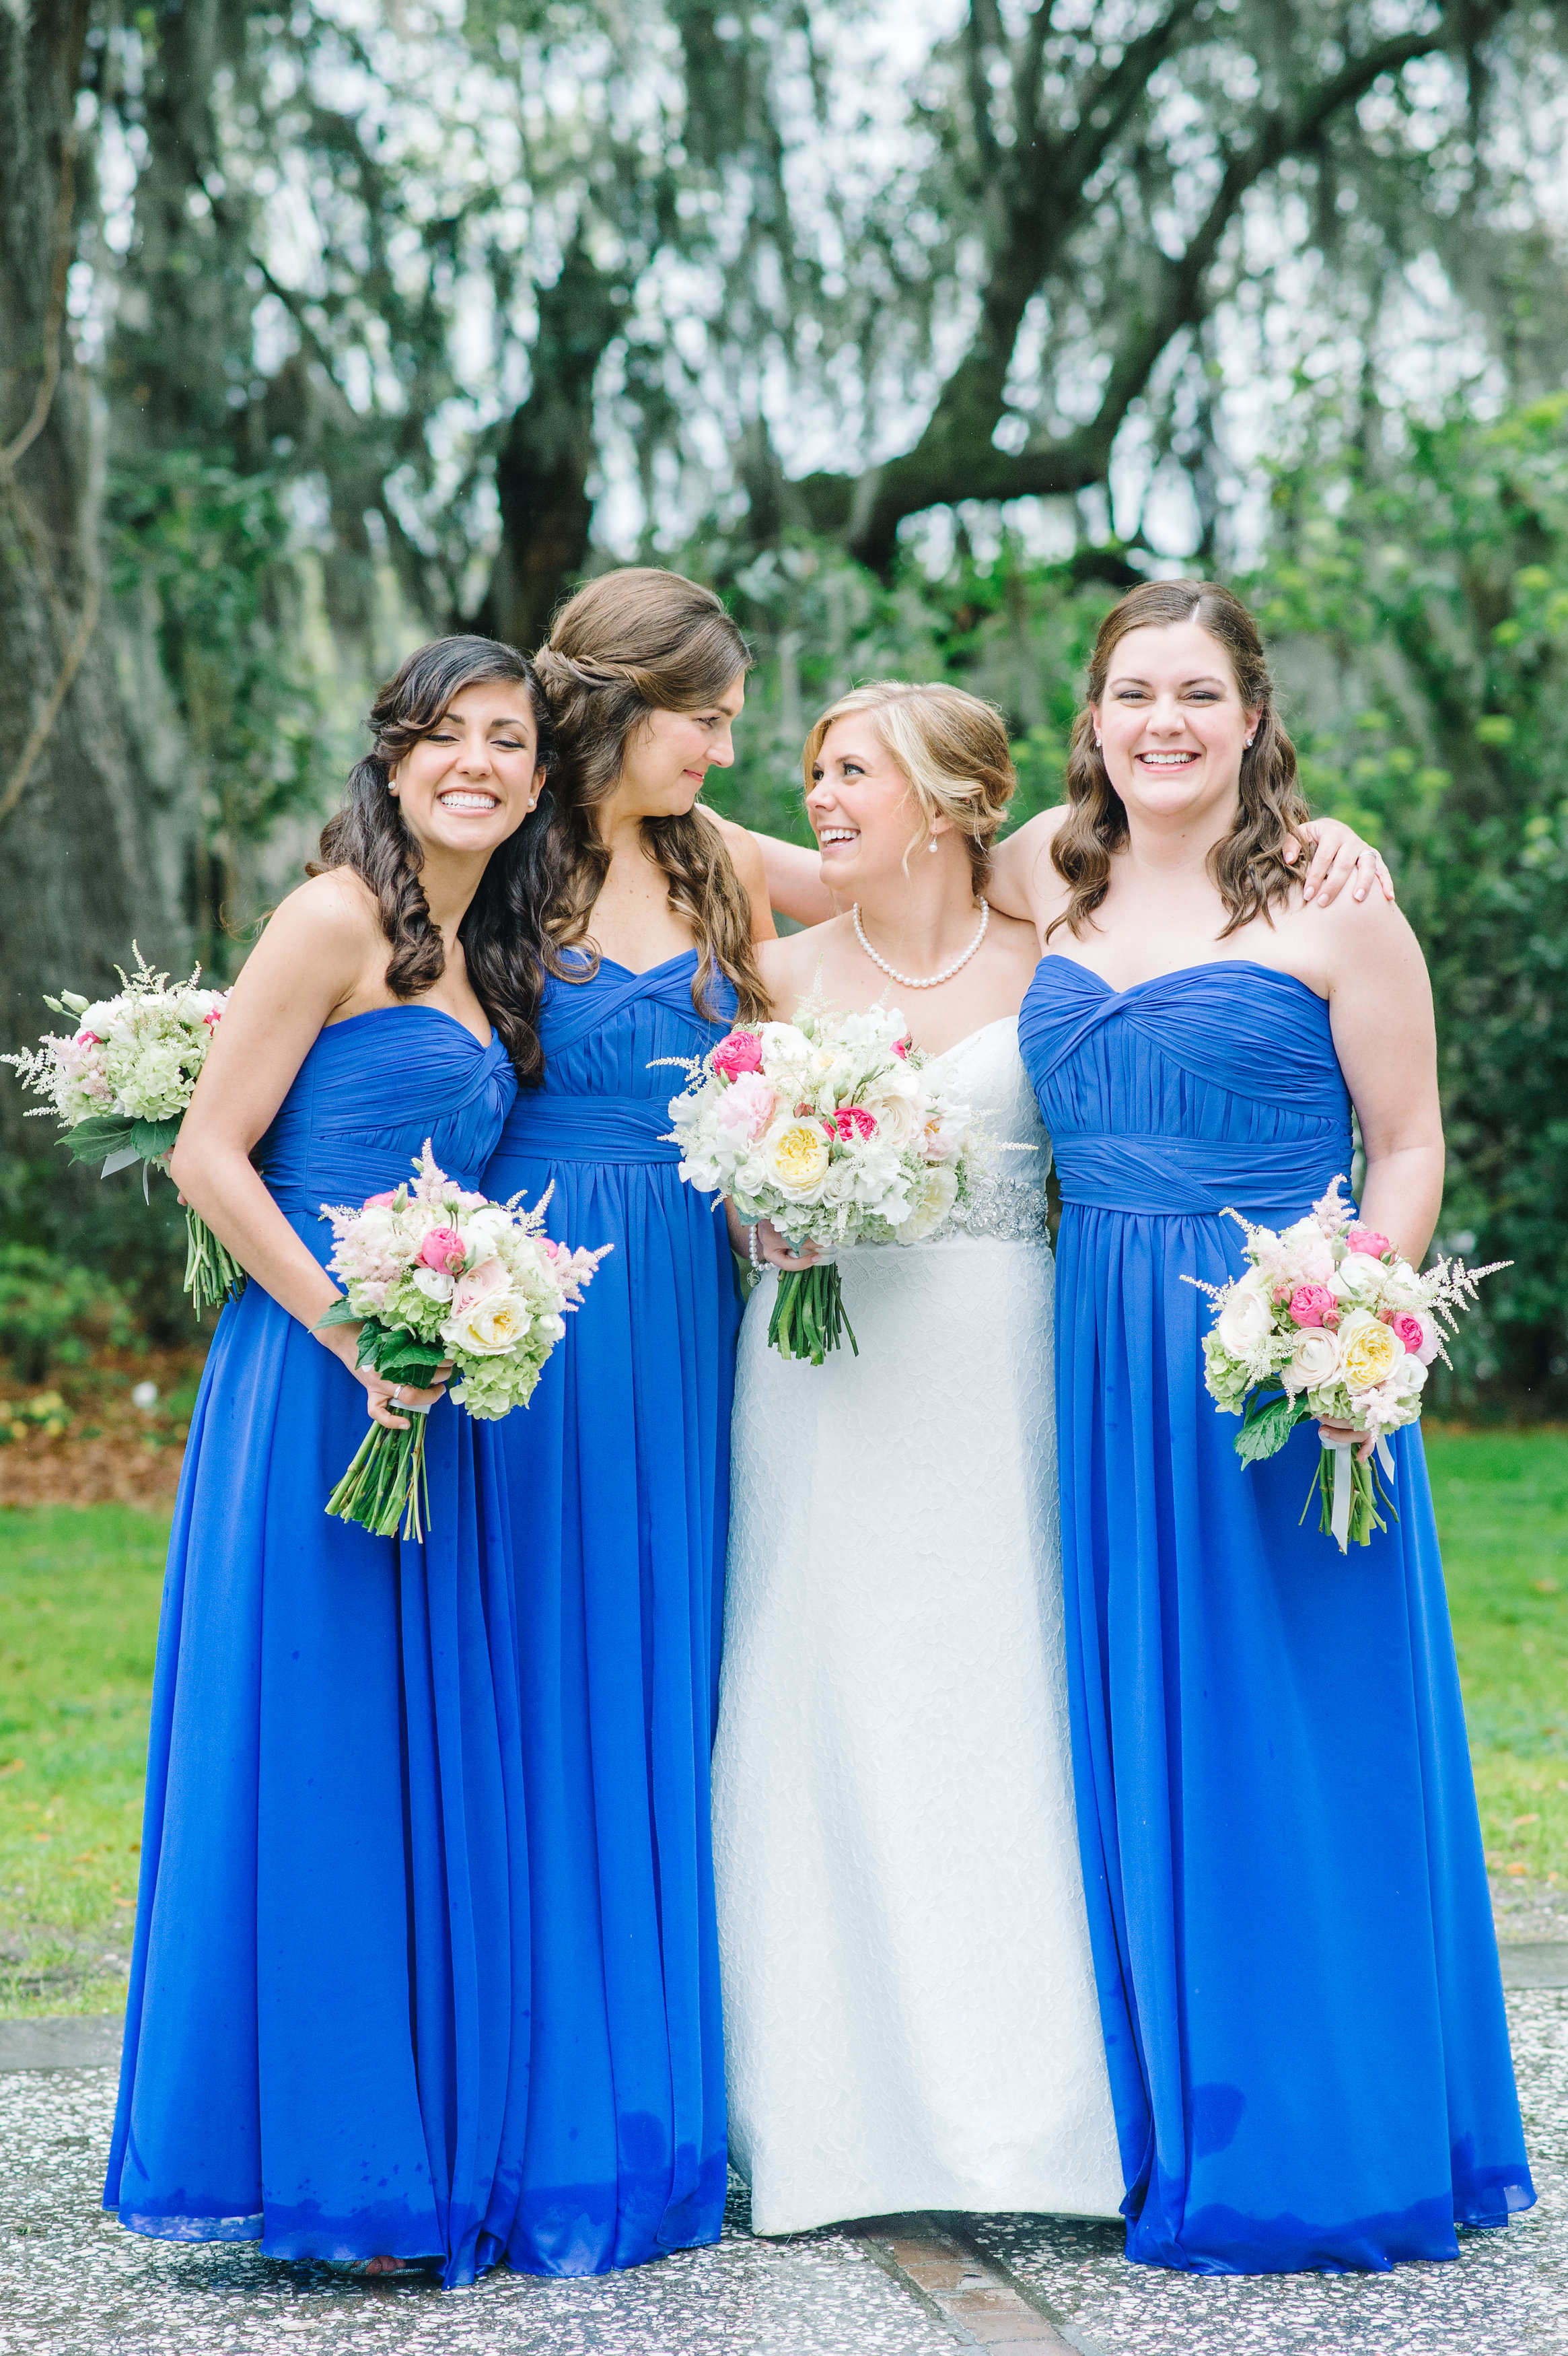 Kimberly+Clinton-MagnoliaPlantationWedding-298 - Copy.jpg